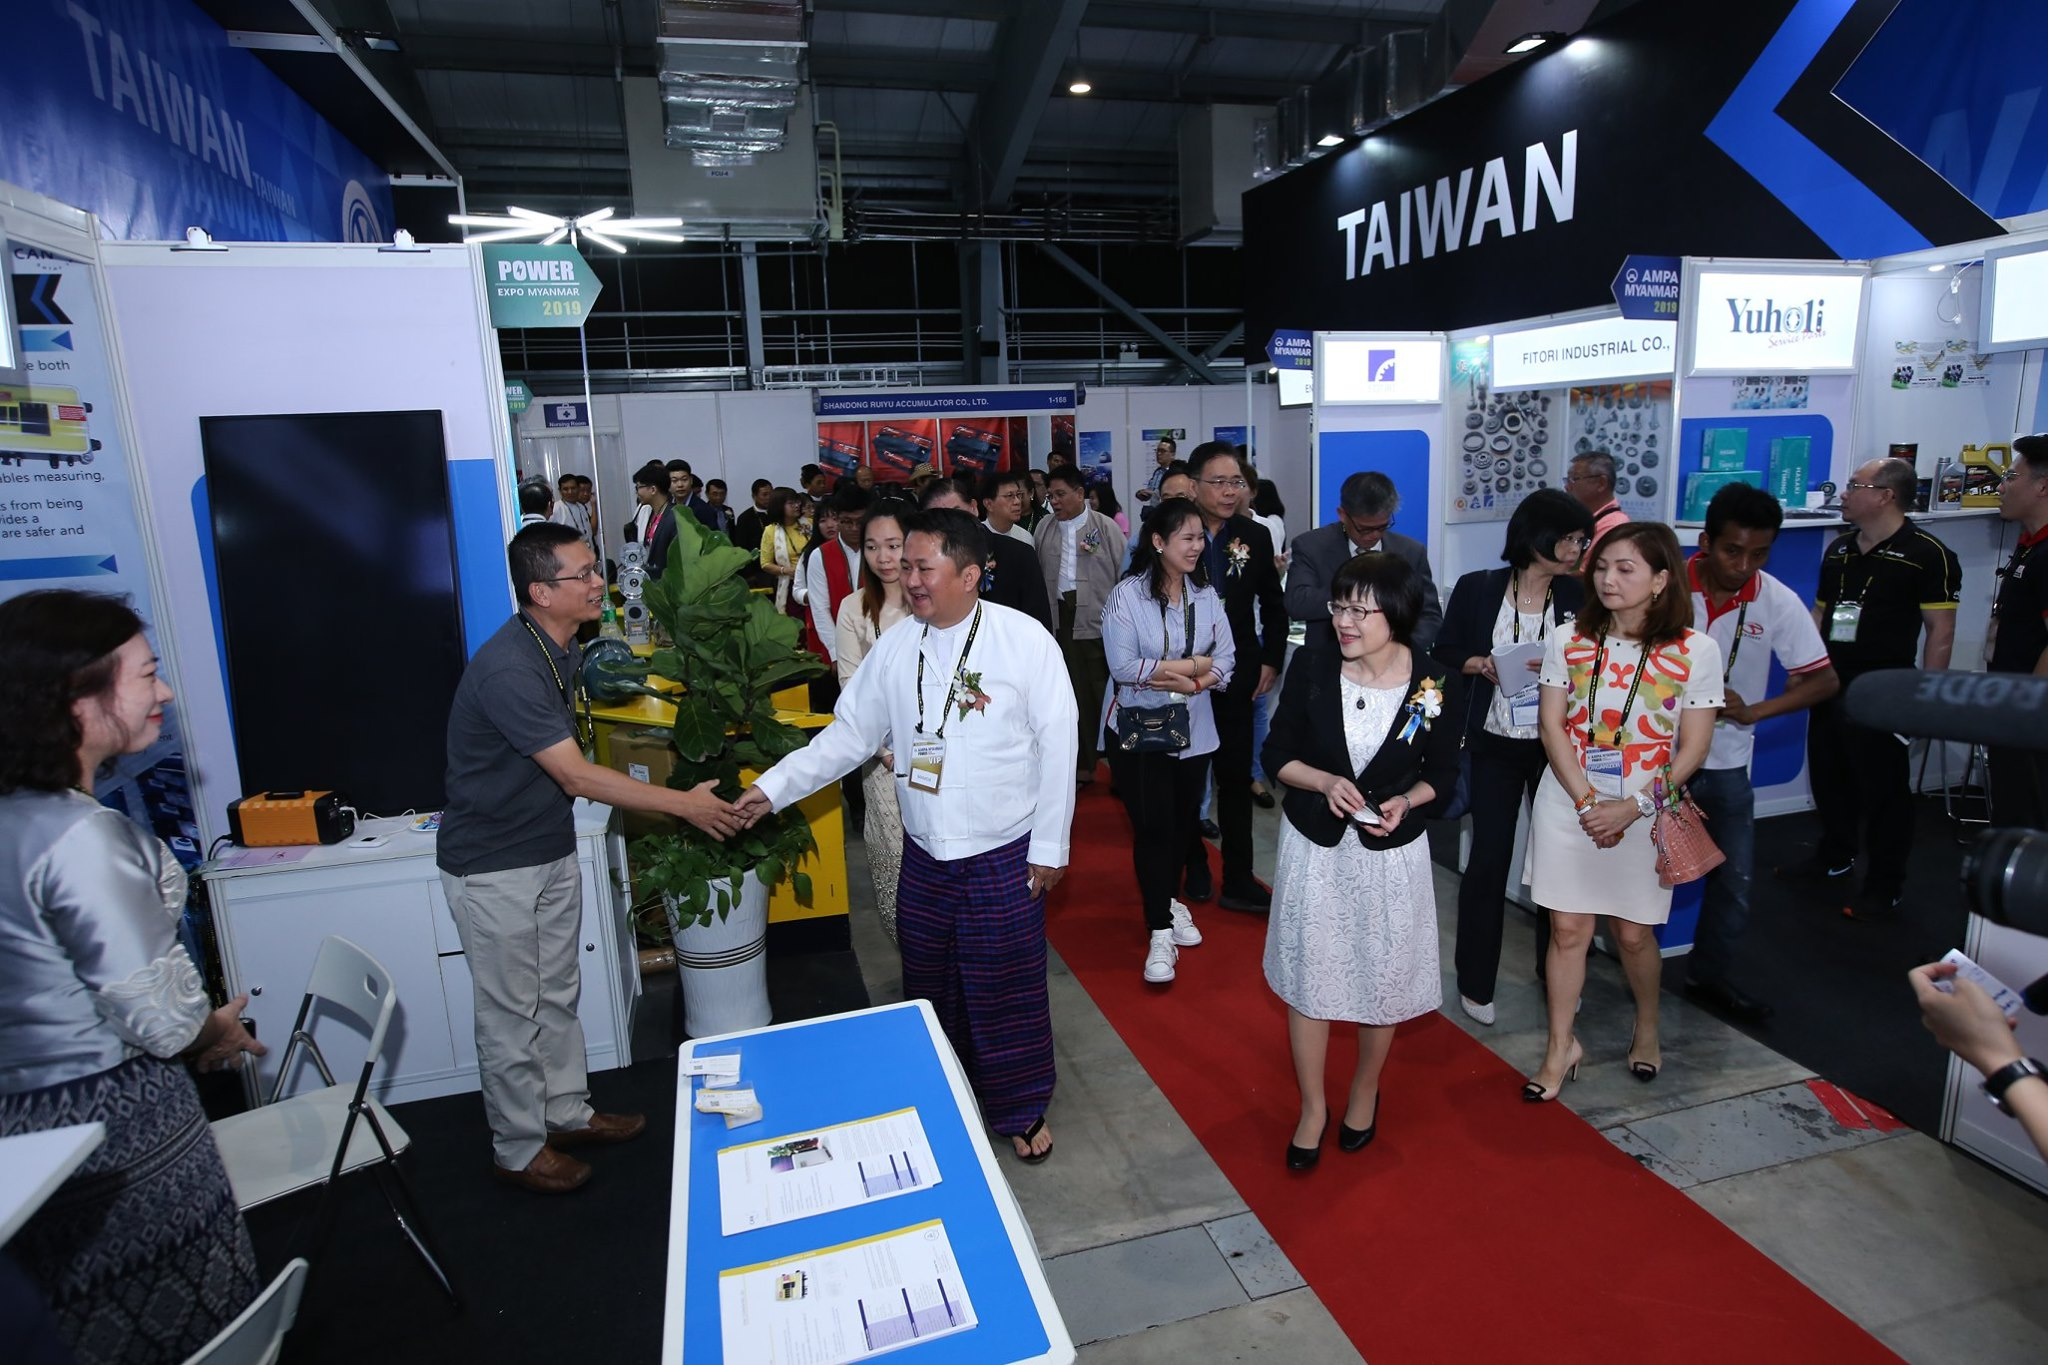 https://storage.googleapis.com/www.taiwantradeshow.com.tw/model/photo/EA/2019/PH00037759-name.jpg